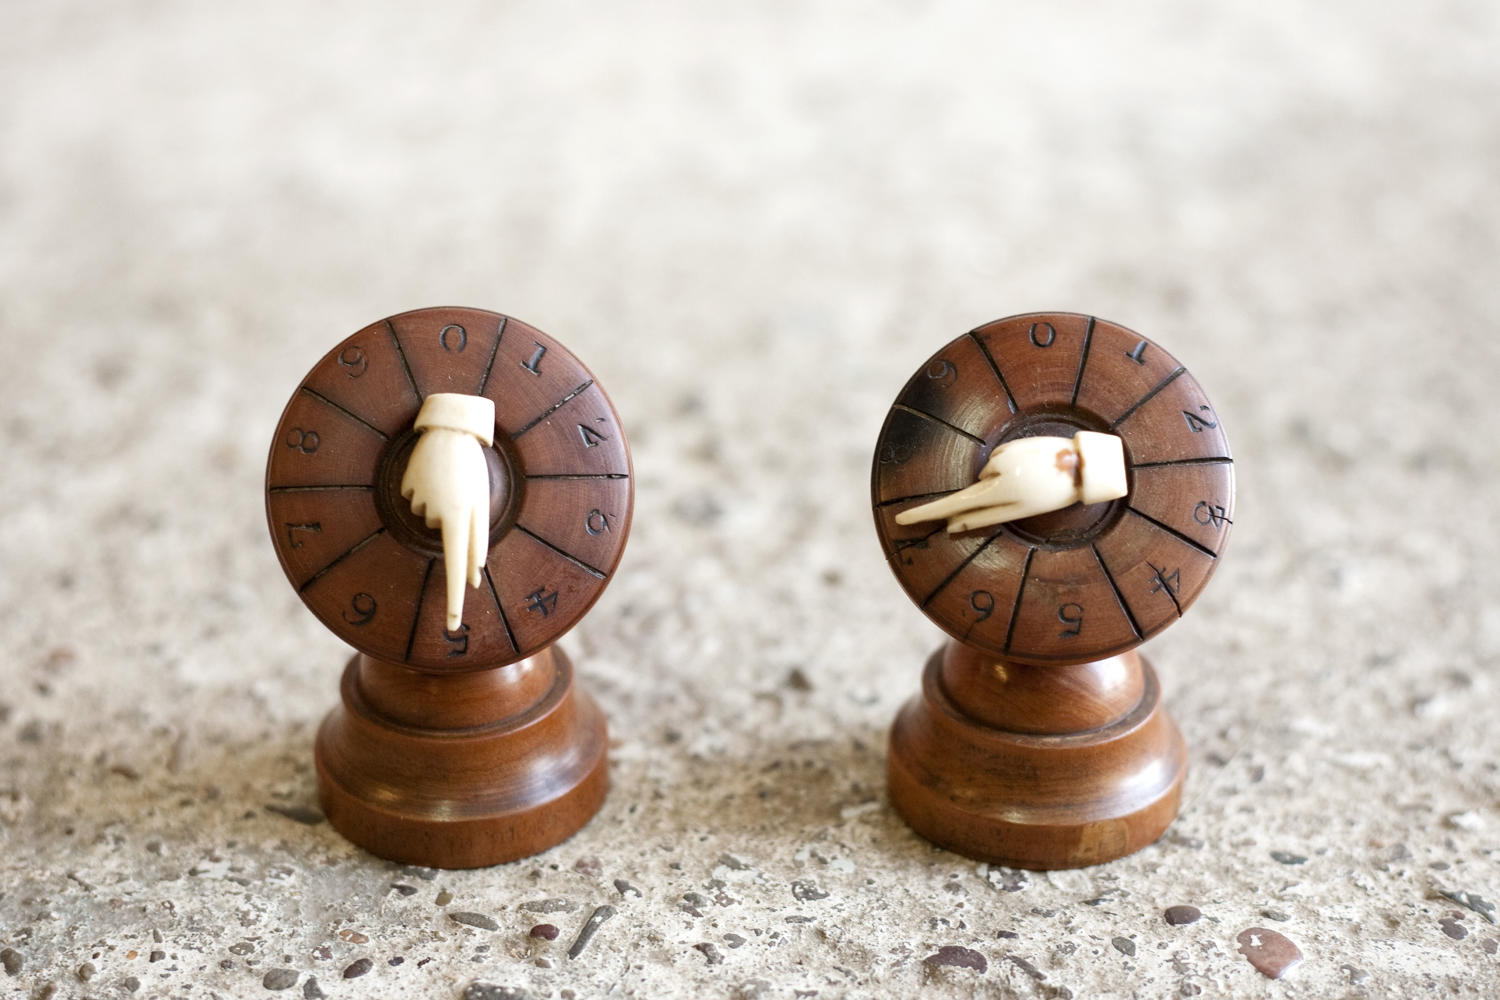 Antique whist markers